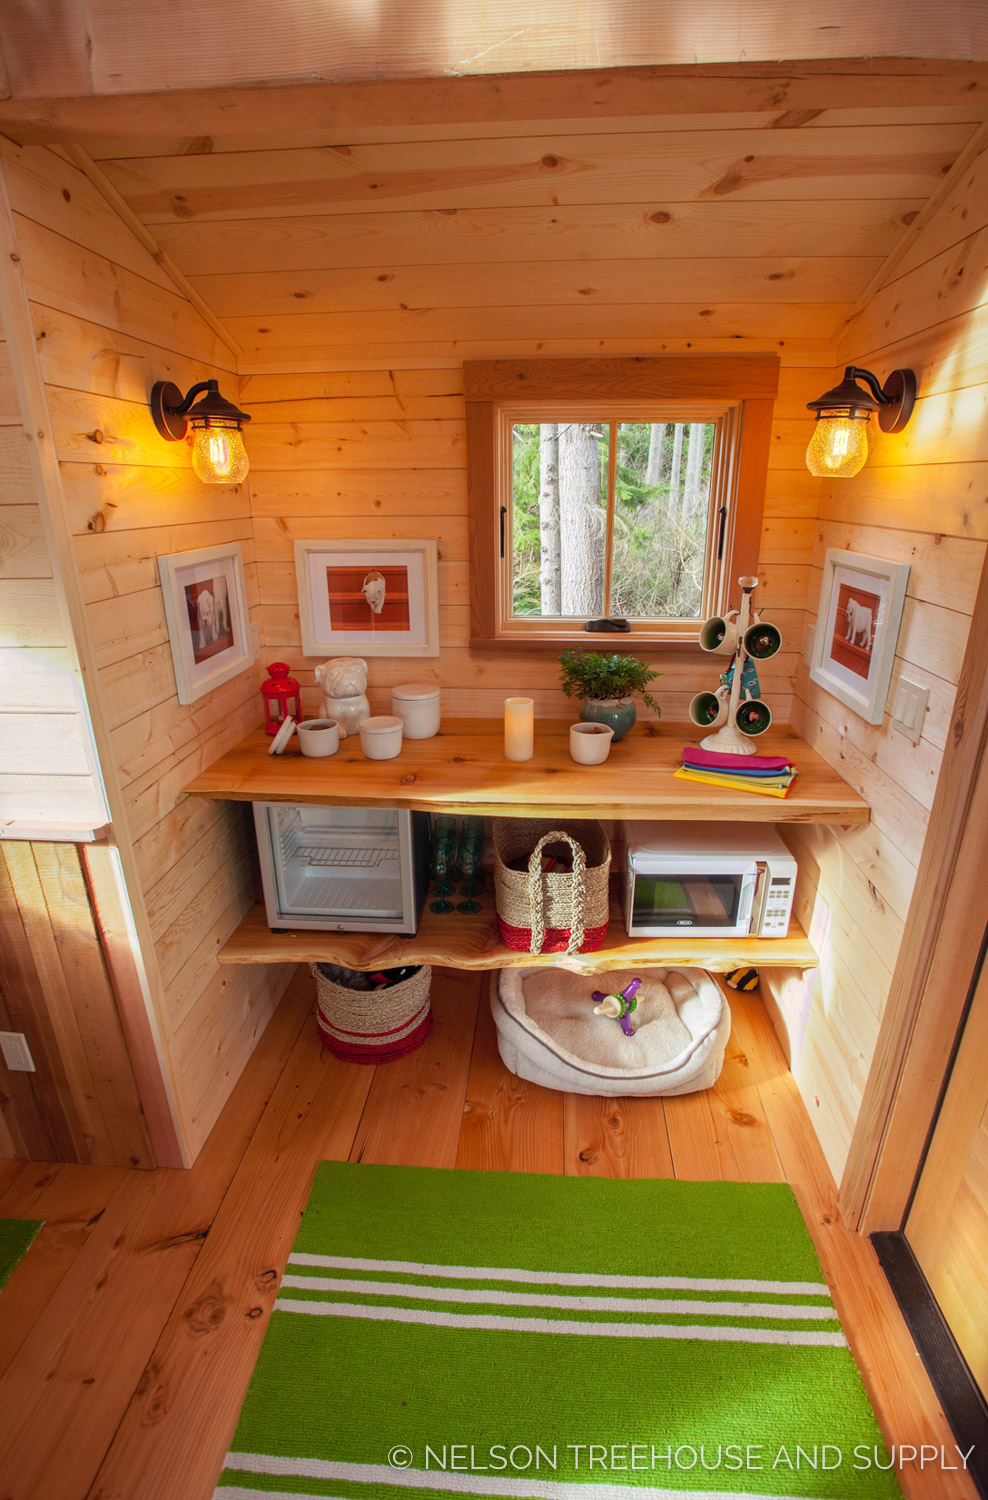 Bulldog Bungalow kitchenette - nelson Treehouse